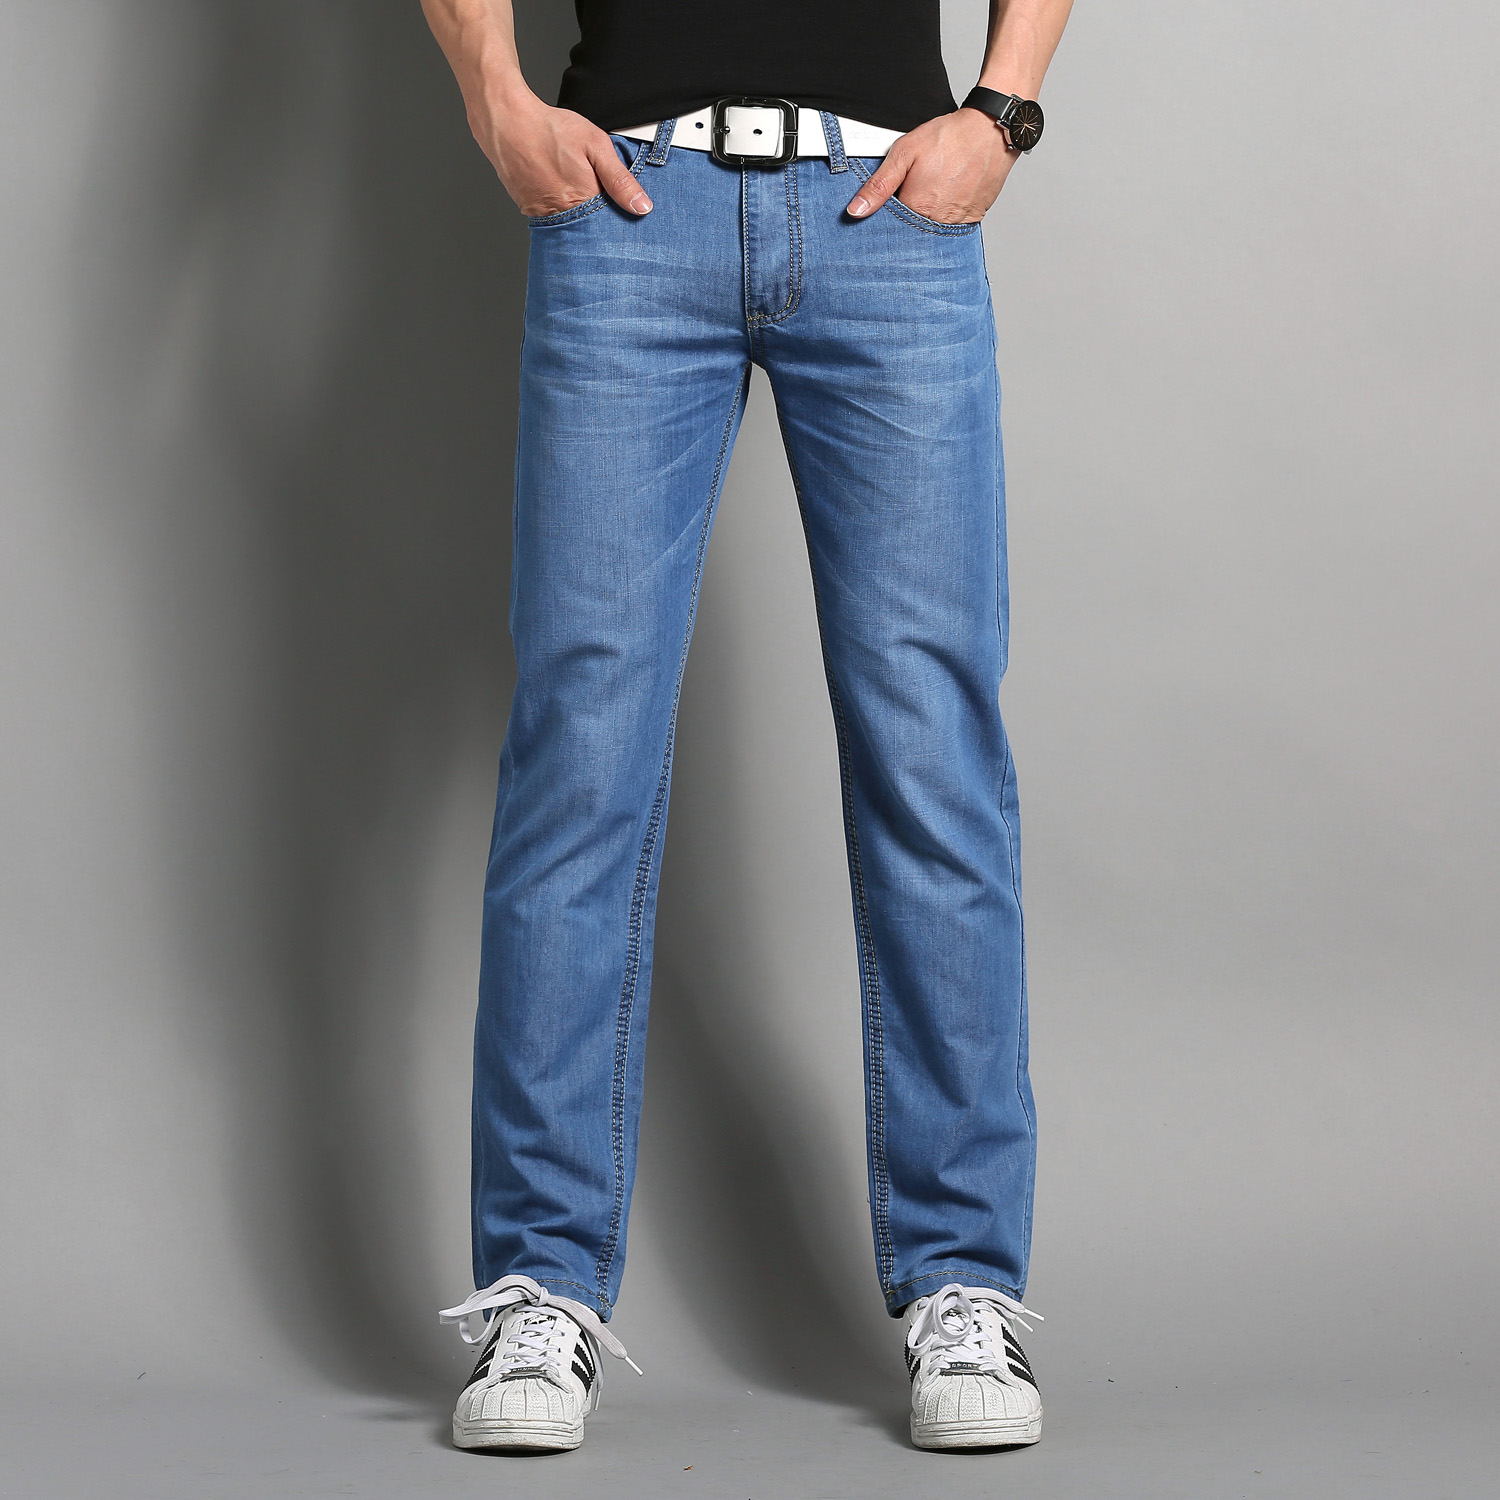 Fashion Menu0026#39;s Sky Blue Jeans Summer Thin Cool Jean Pants Leisure Casual Trousers Fitted Male ...